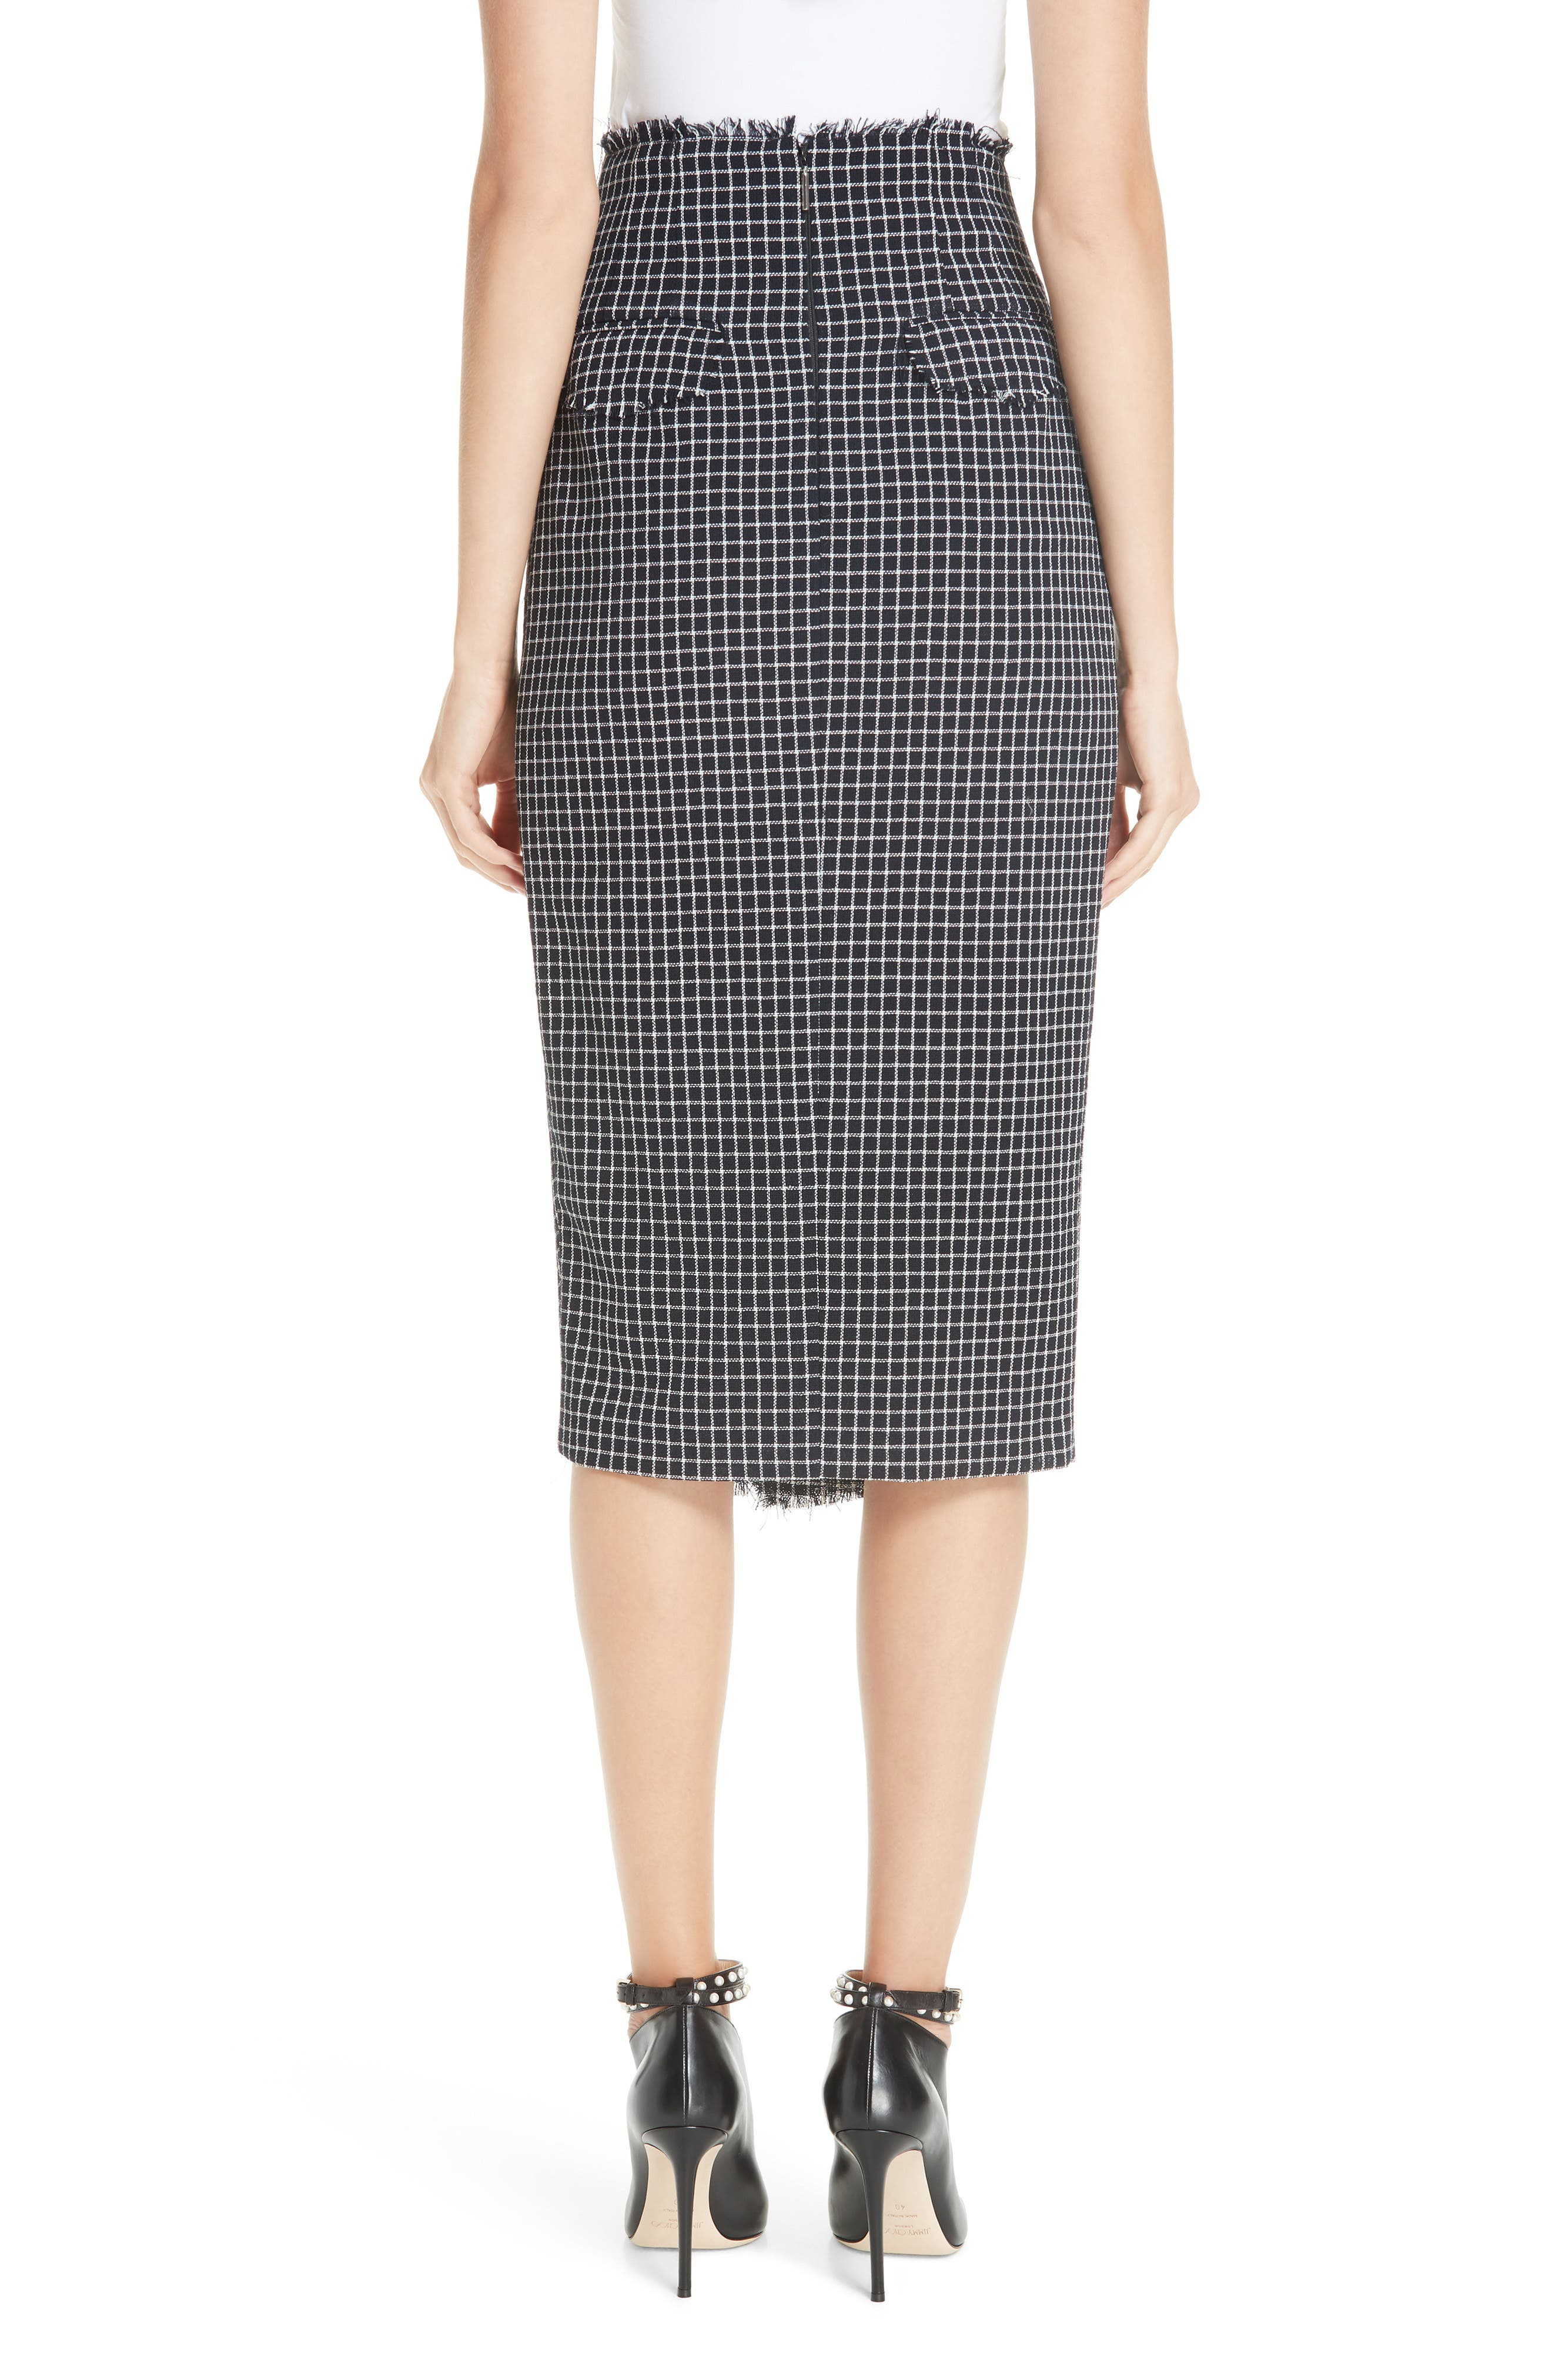 JASON WU COLLECTION,                             Wool Check Skirt,                             Alternate thumbnail 2, color,                             001